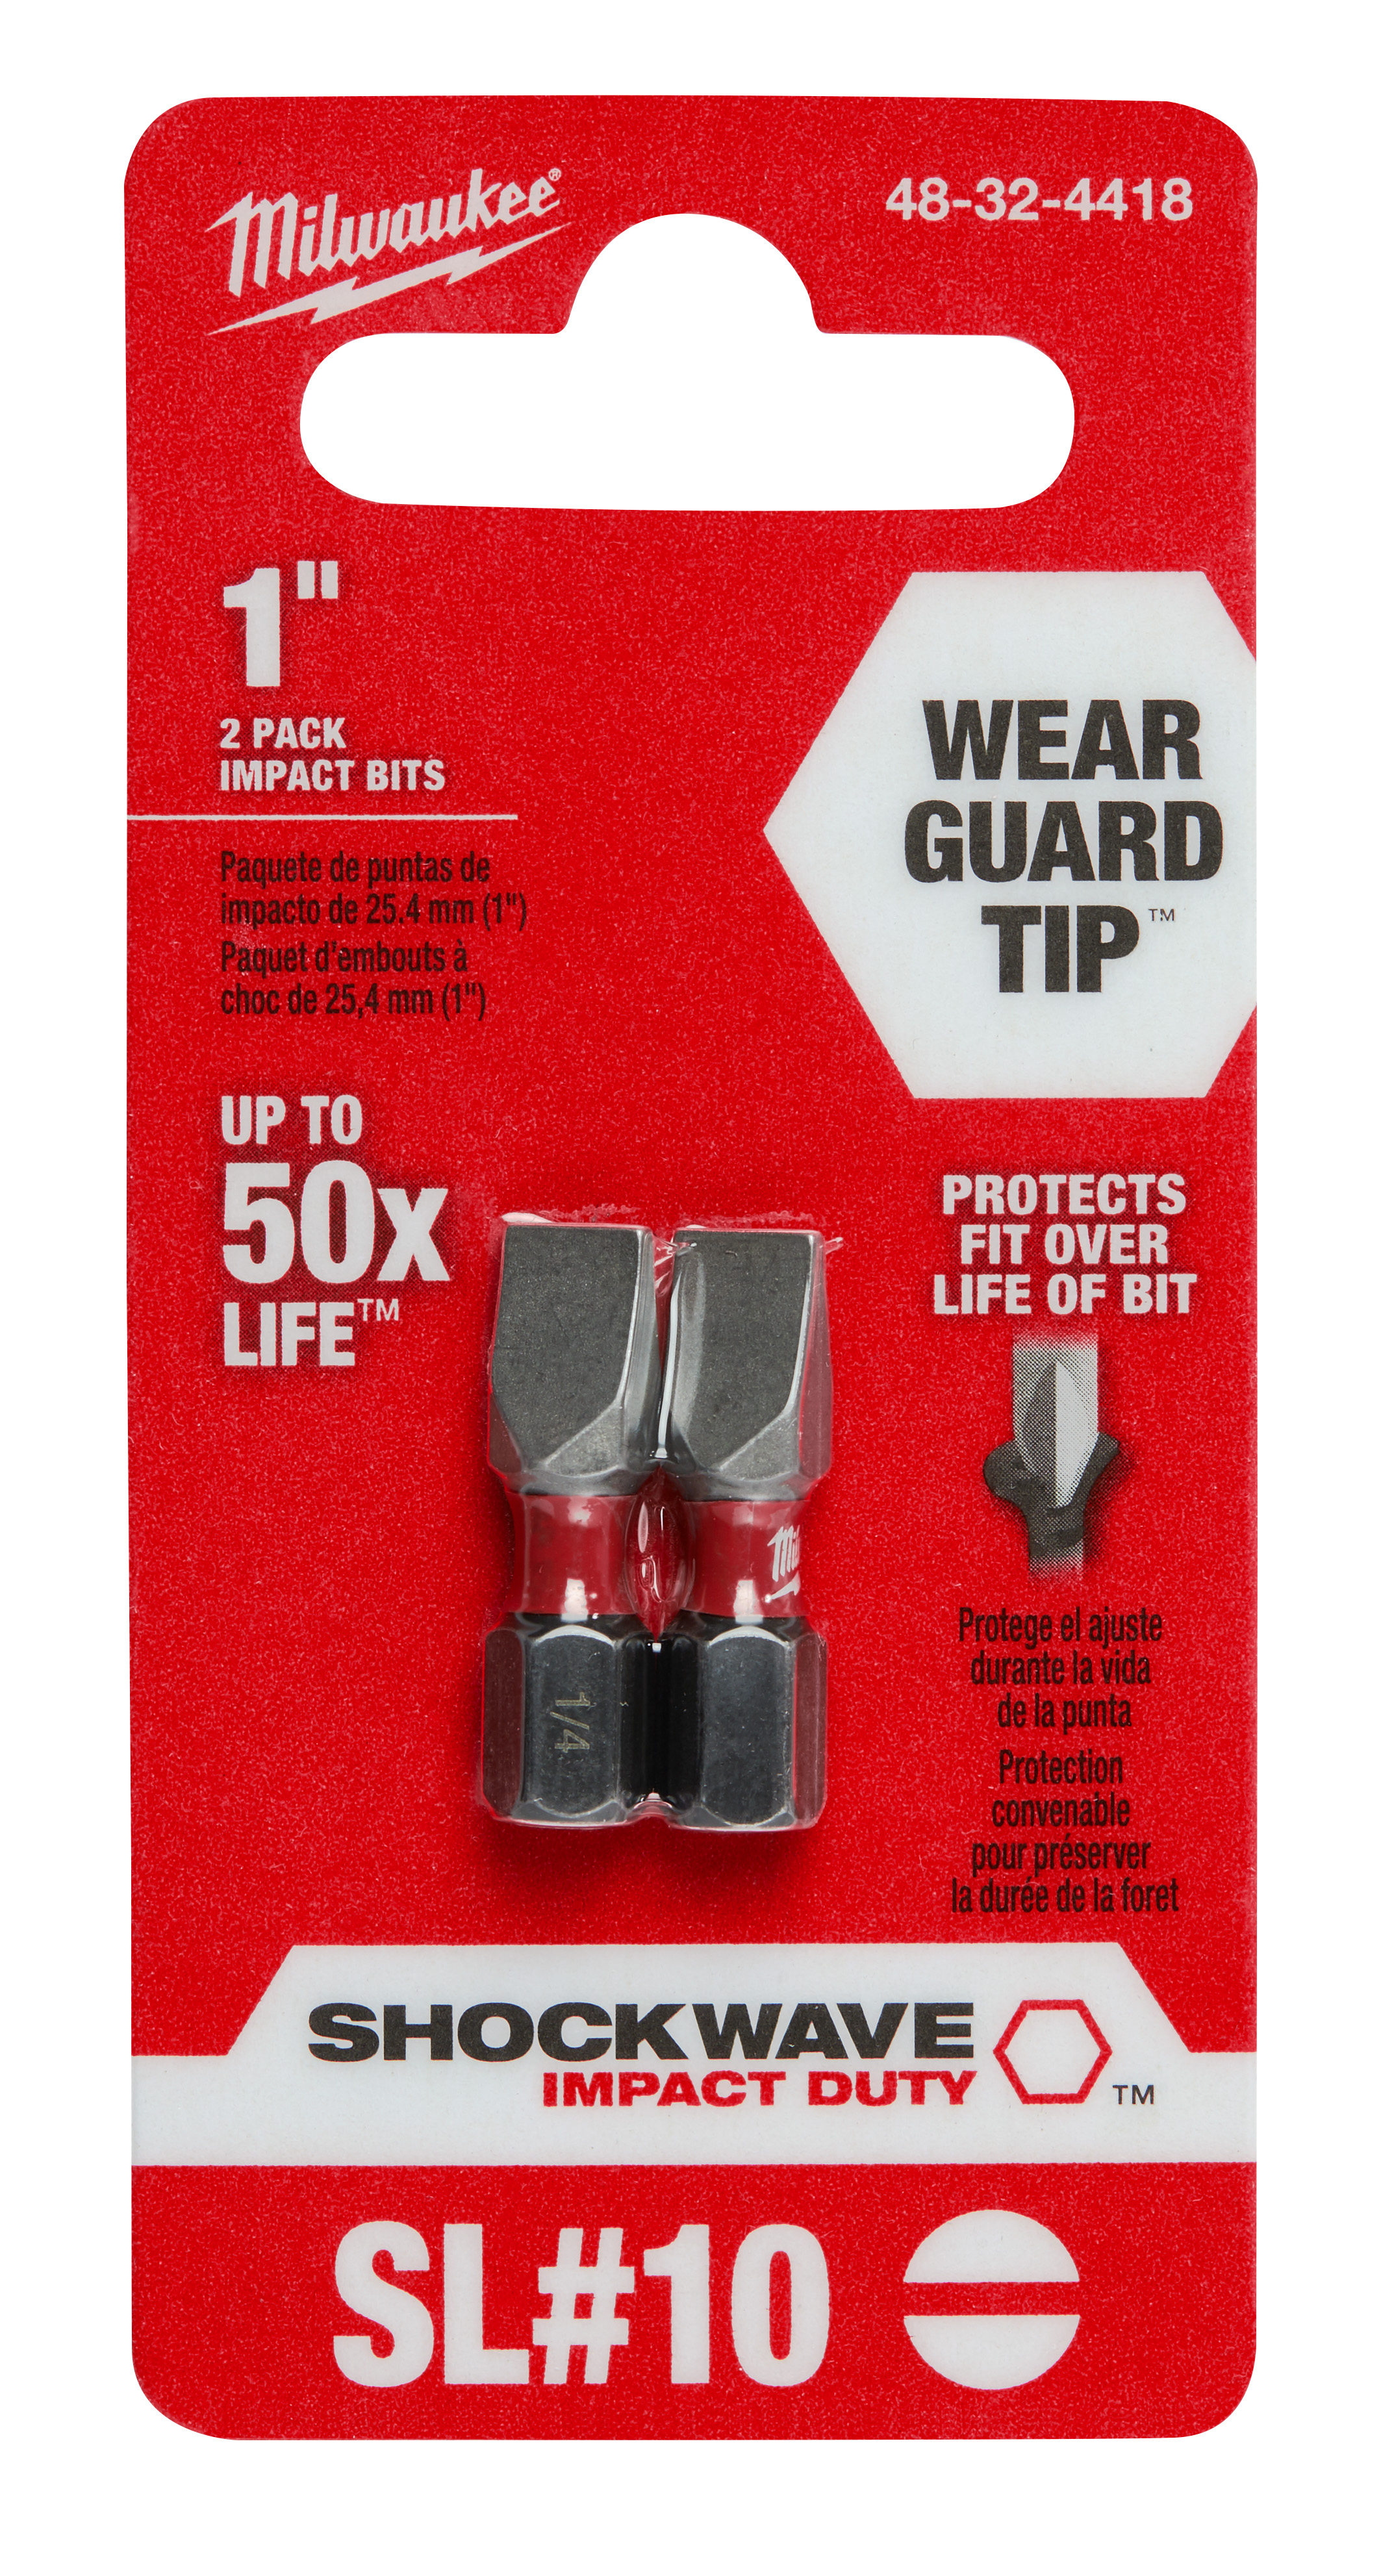 "Milwaukee 48-32-4418 SHOCKWAVE™ 2-Piece Impact Slotted 1/4"" Insert Bits"